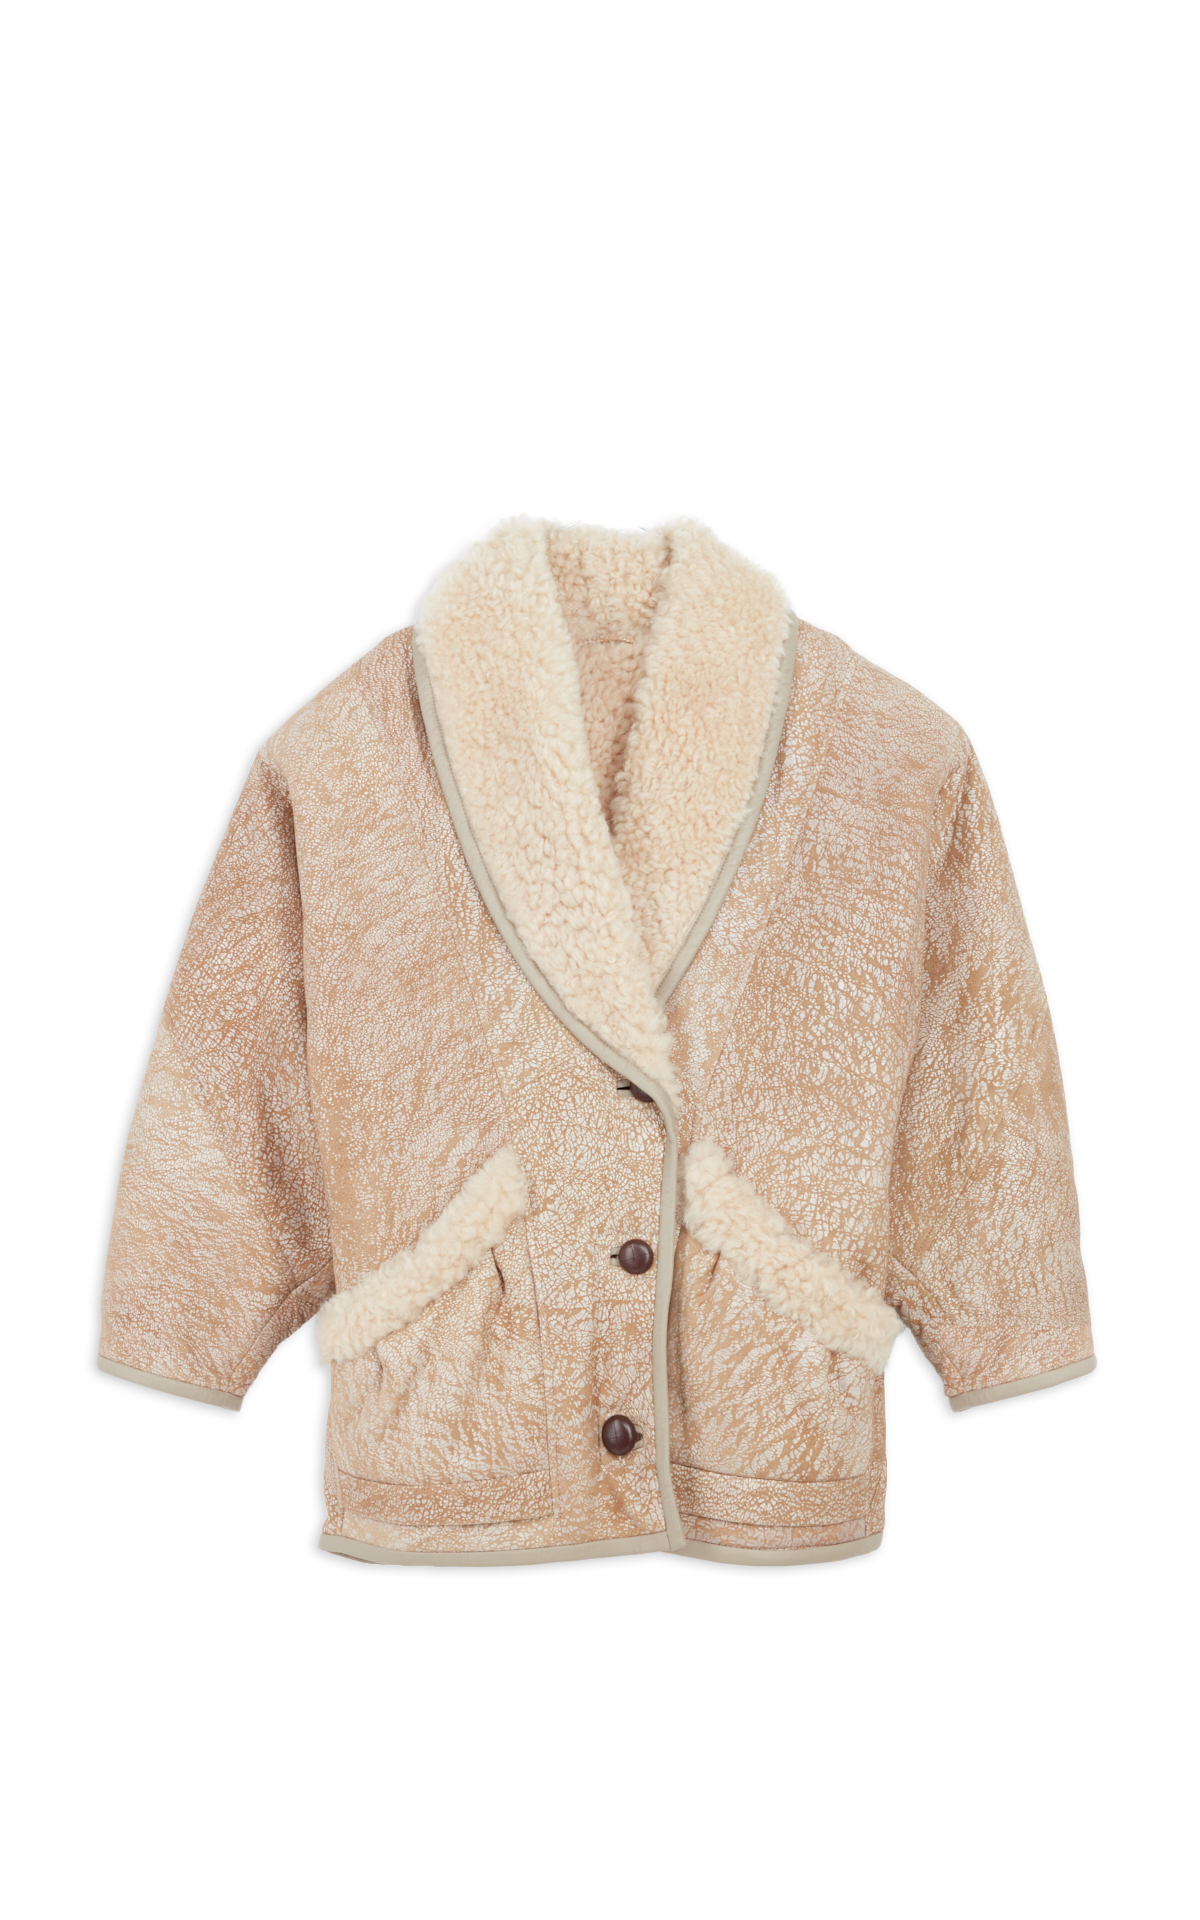 Isabel Marant cream Audrina coat la vallée village